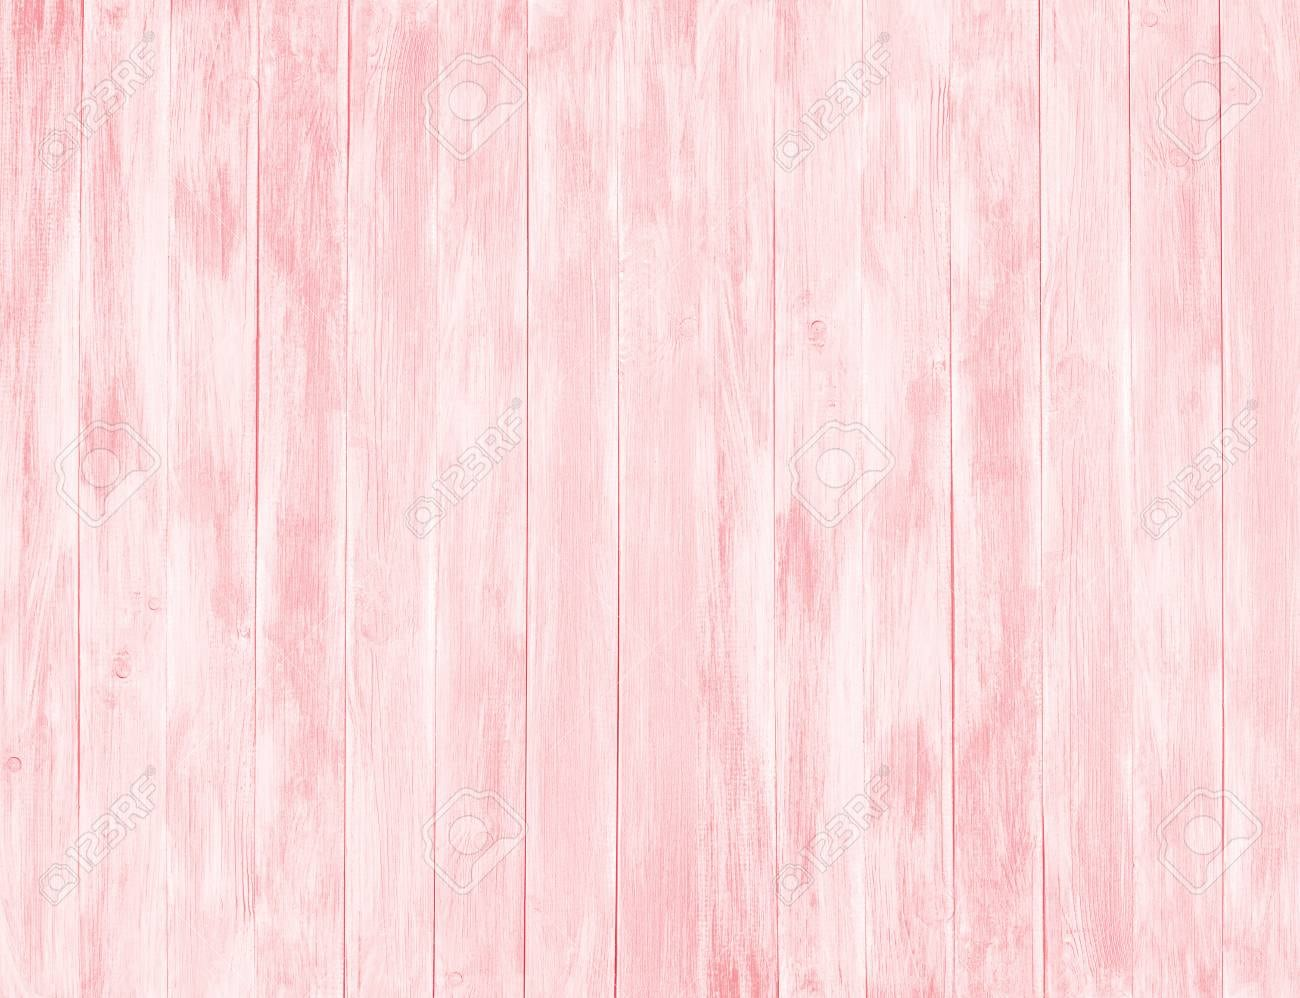 1300x998 - Background Pink 7